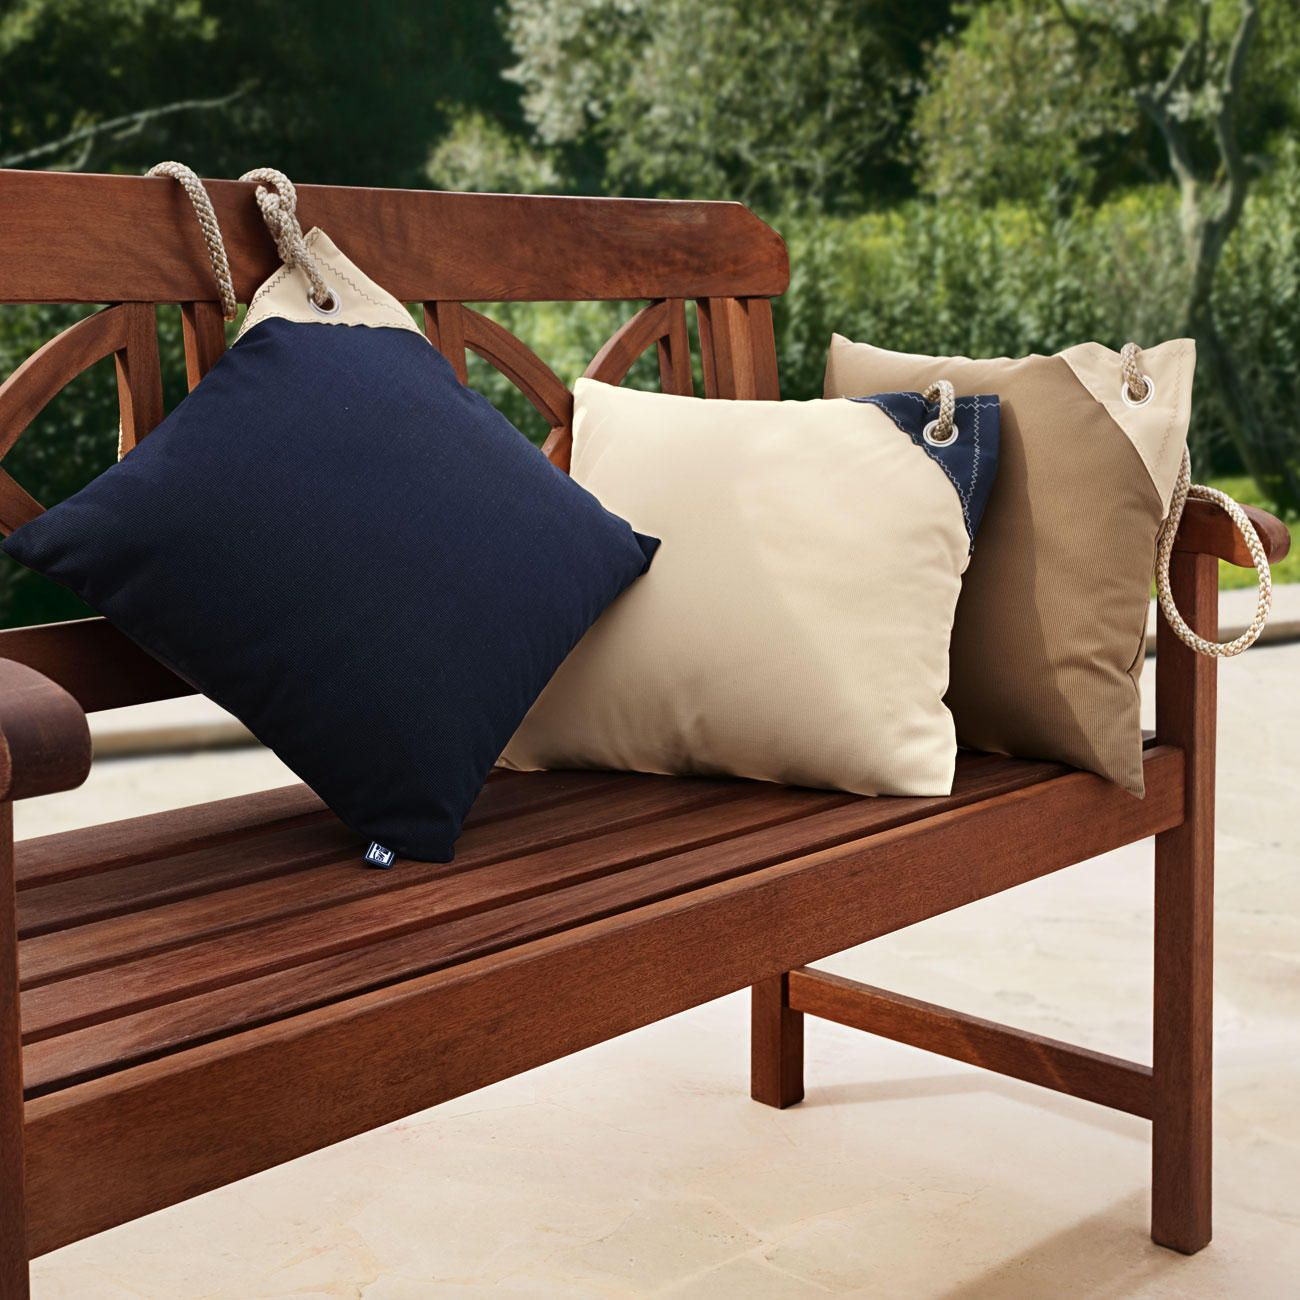 Outdoor Patio Furniture Cushions Waterproof Outdoor Cushions Patio Furniture Patio Furniture Cushions Outdoor Furniture Cushions